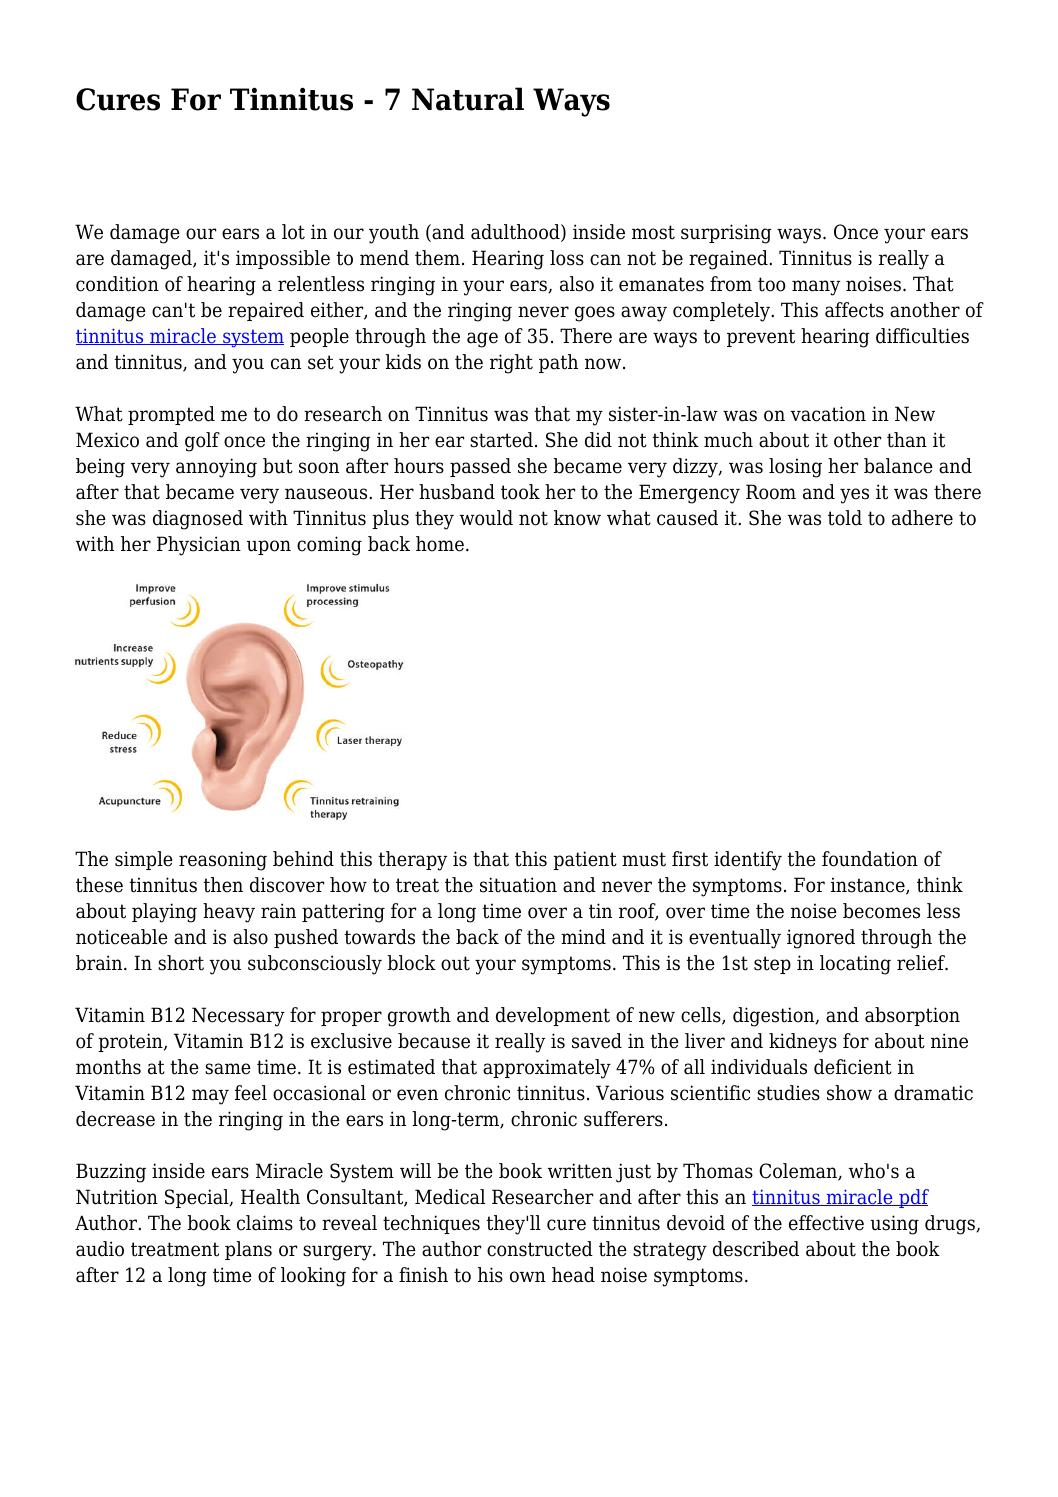 Cures For Tinnitus - 7 Natural Ways by lackingtag8975 - issuu